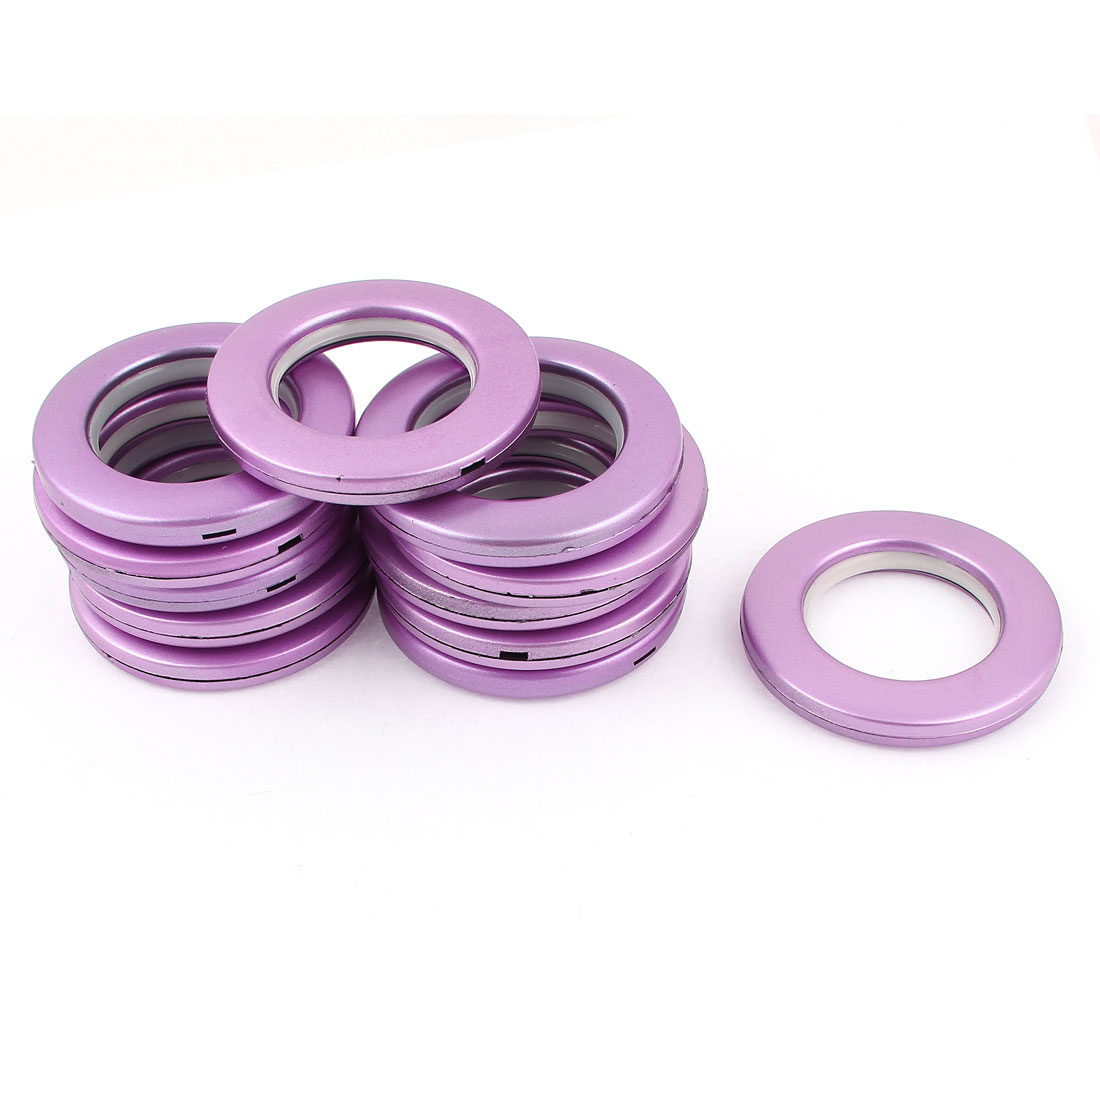 12 Pcs Round Shape Purple Plastic Curtain Rings 41mm Inner Diameter